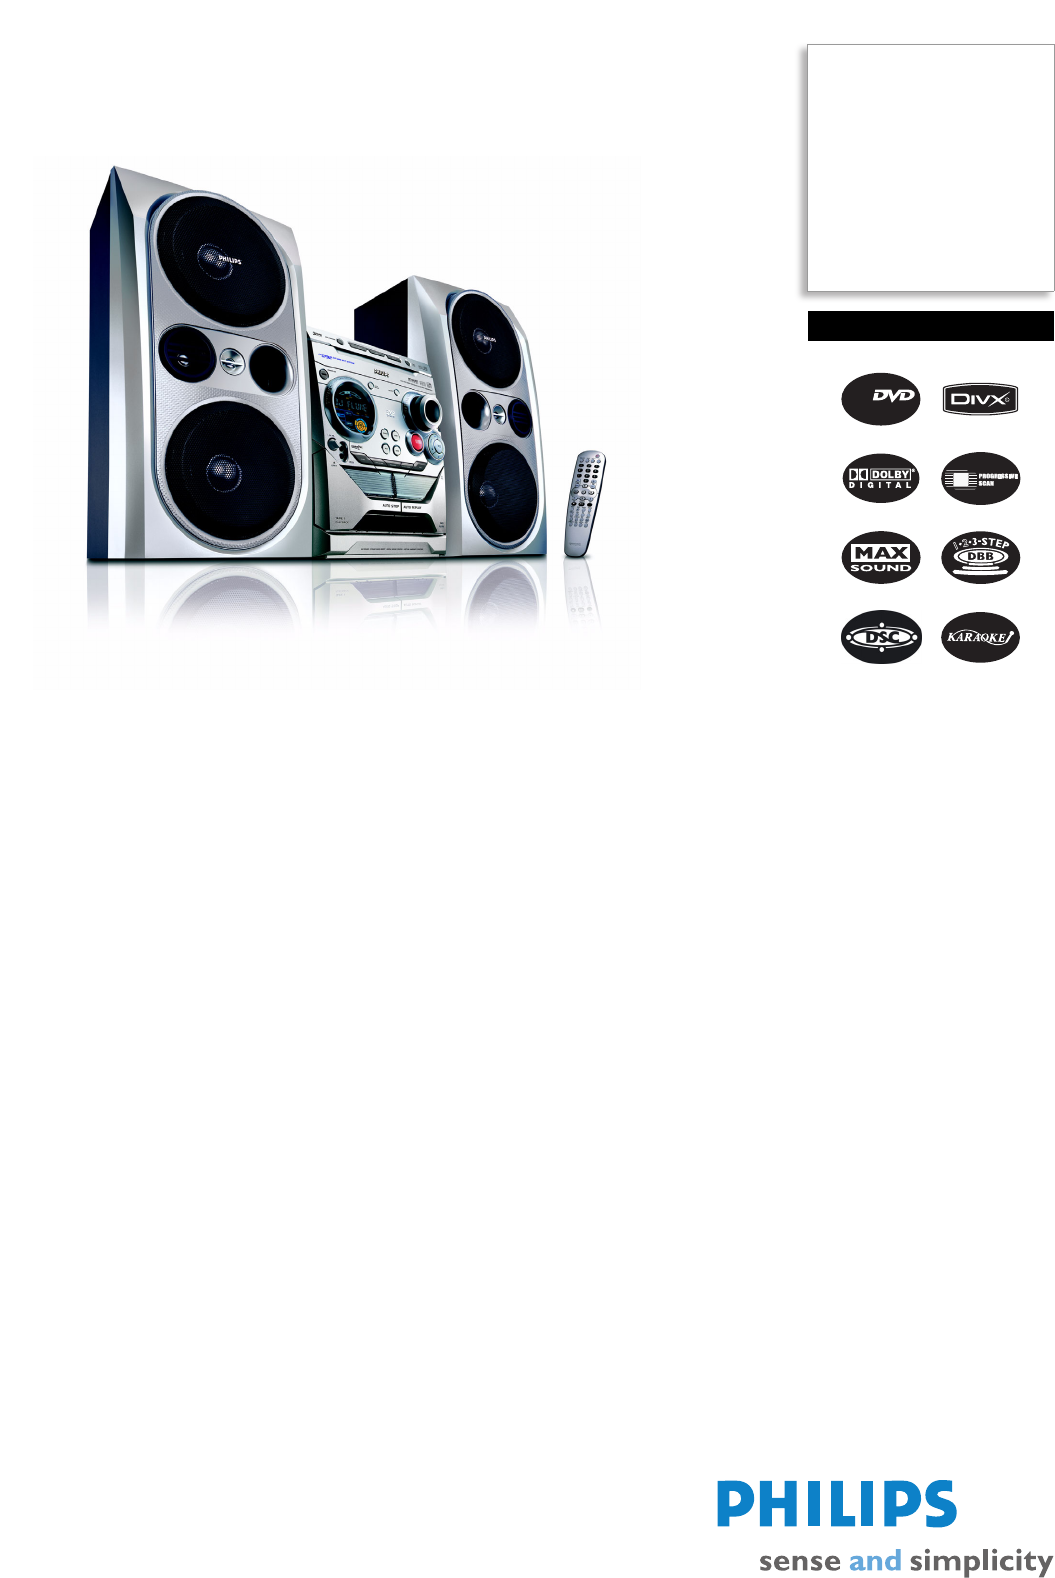 philips stereo system fwd792 user guide manualsonline com rh audio manualsonline com Philips Electronics Manuals Philips TV Manual